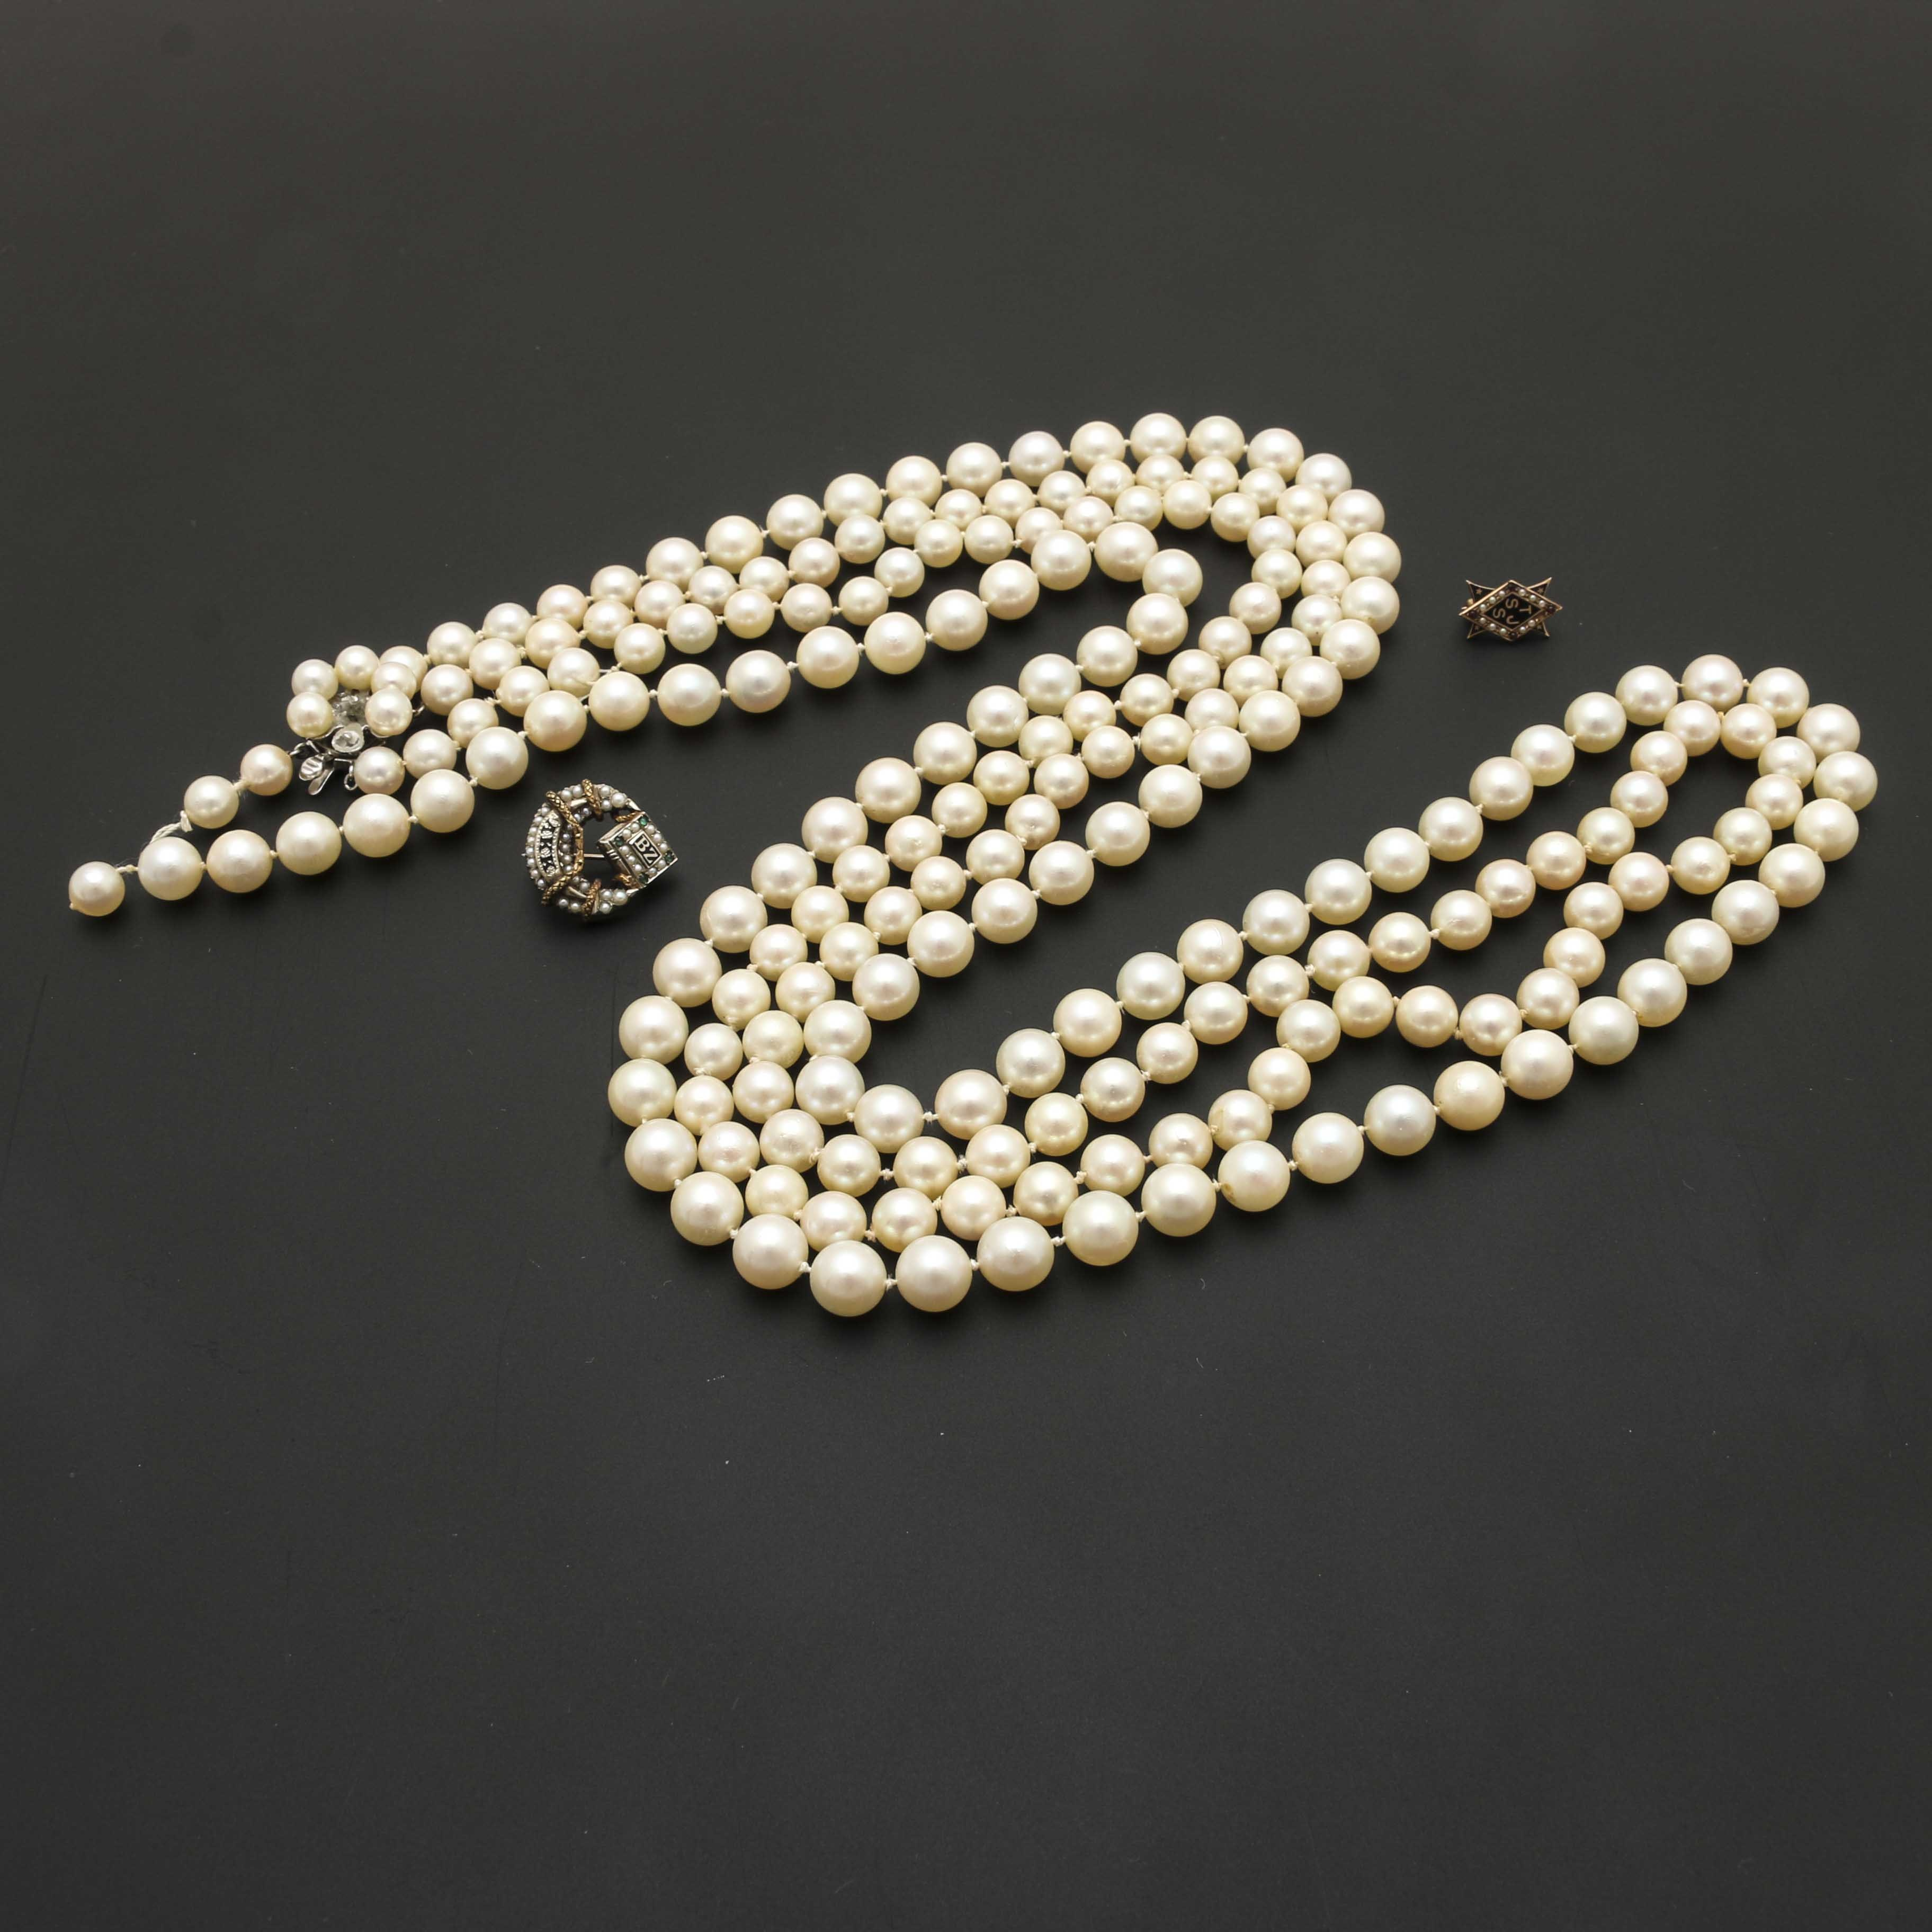 10K and 14K Gold Pearl Necklace and Brooch Selection With Gemstones